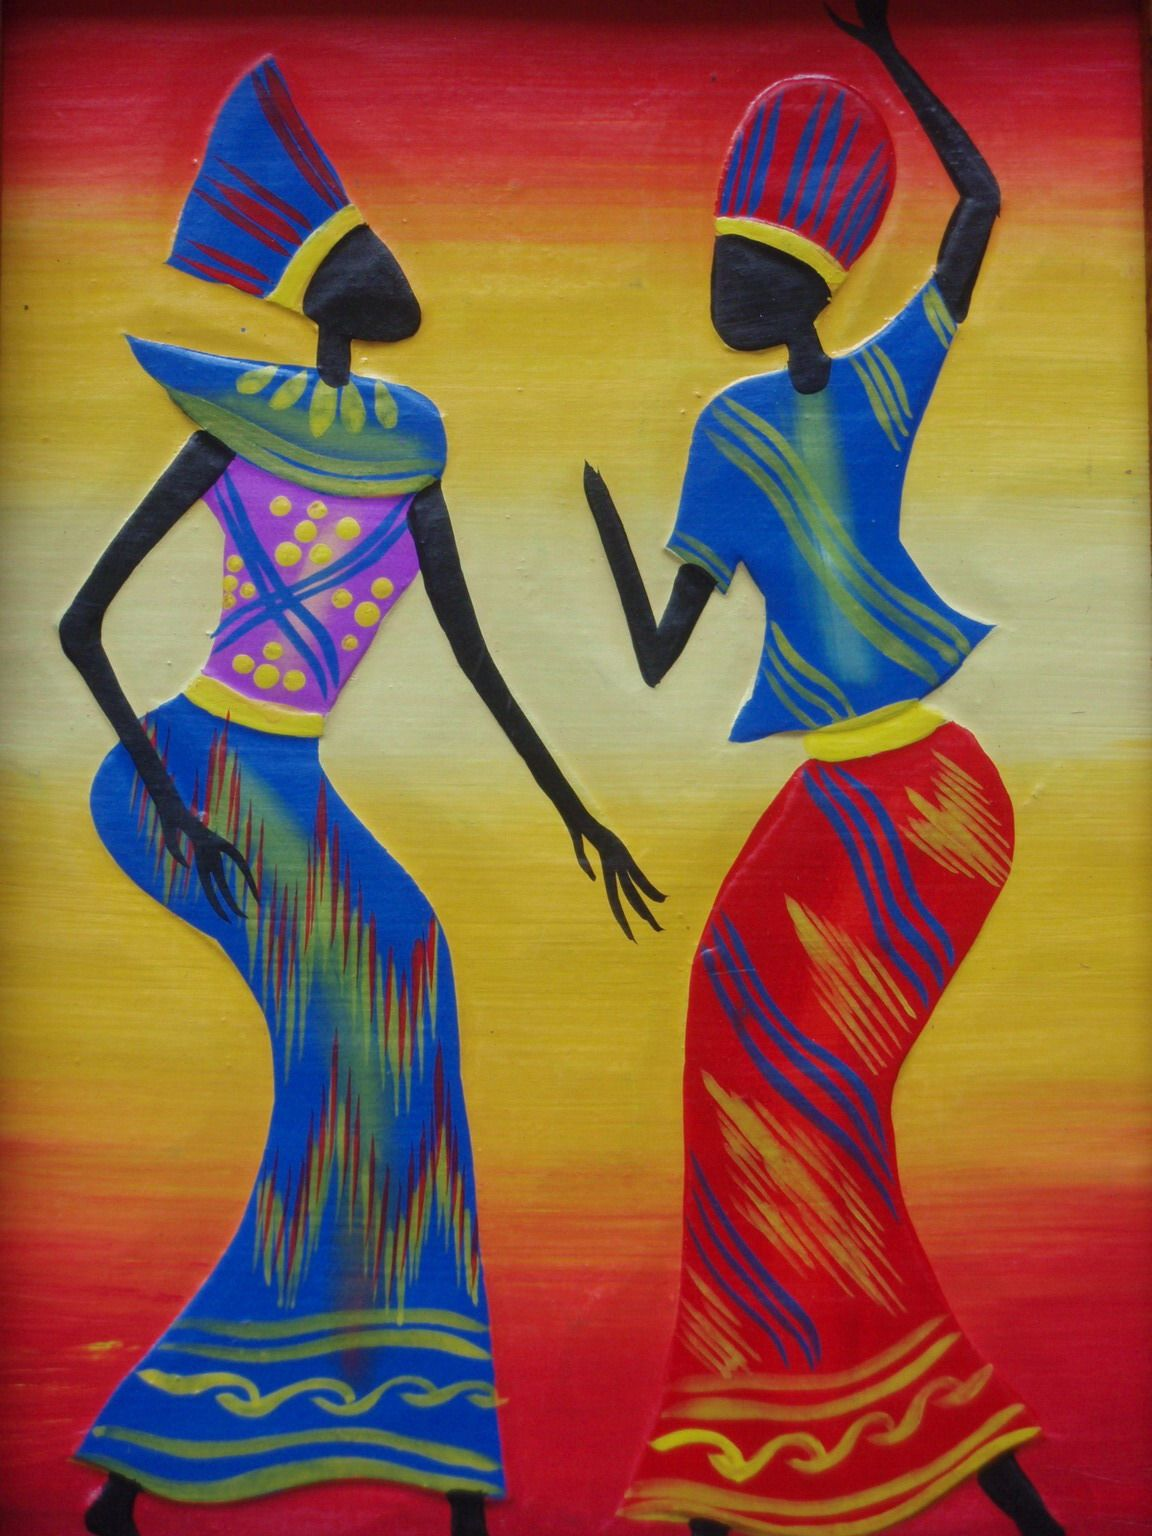 African Art Modernartists Tribalart Africanart Arts Art African Art Paintings African Paintings African Art